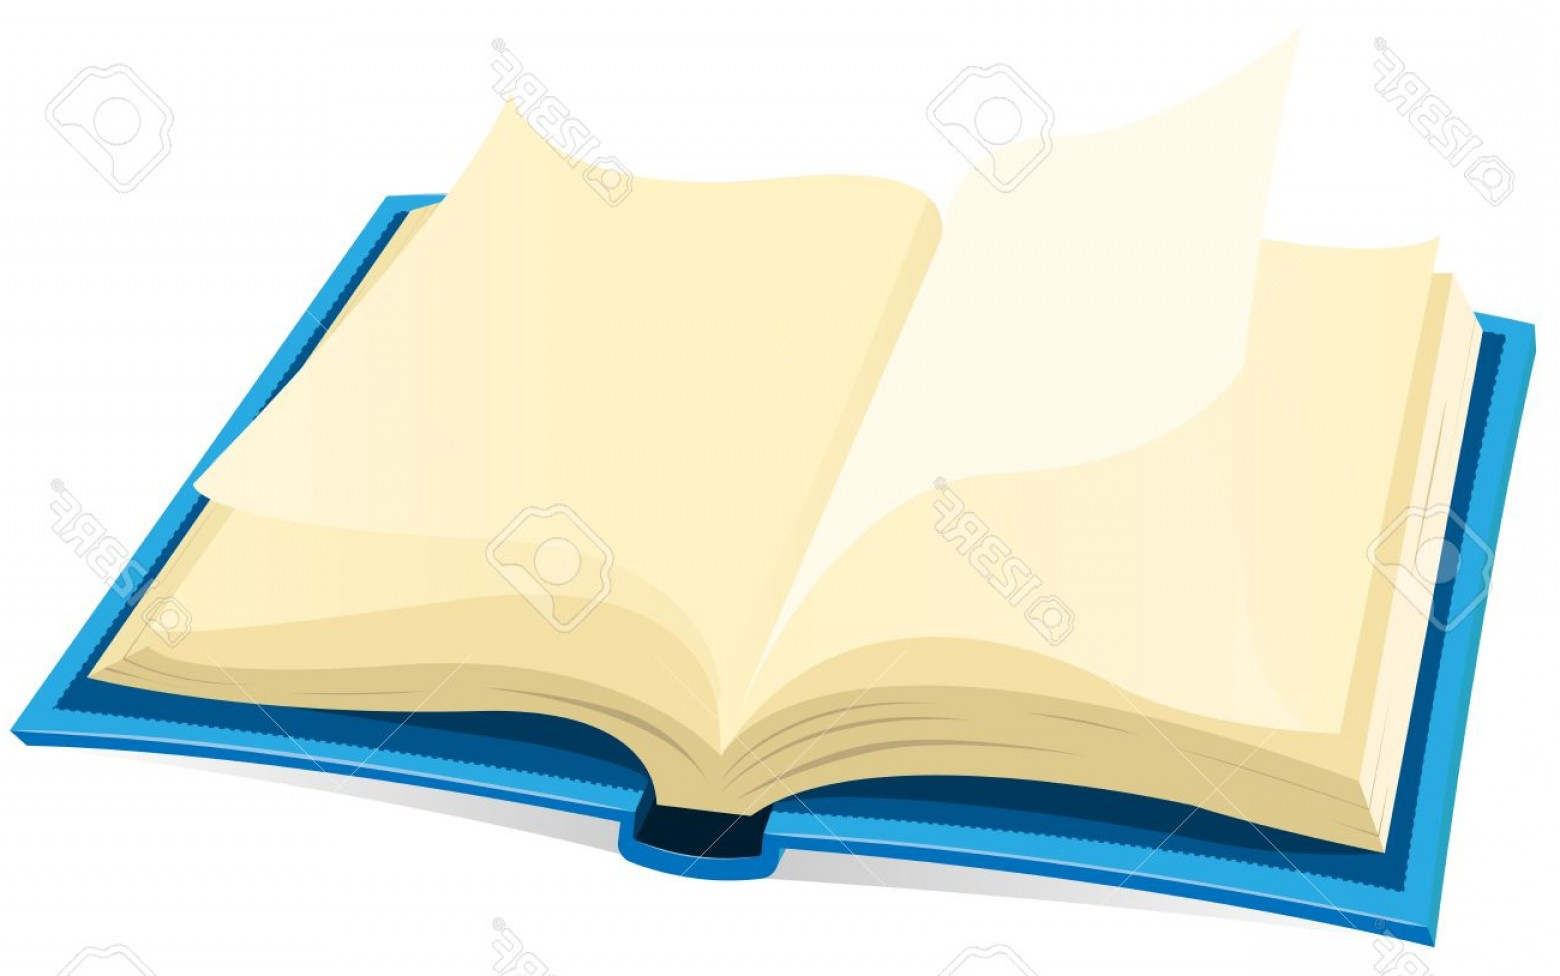 Cartoon Blank Open Book Vector: Photoillustration Of A Blue Covered Open Book With Blank Pages